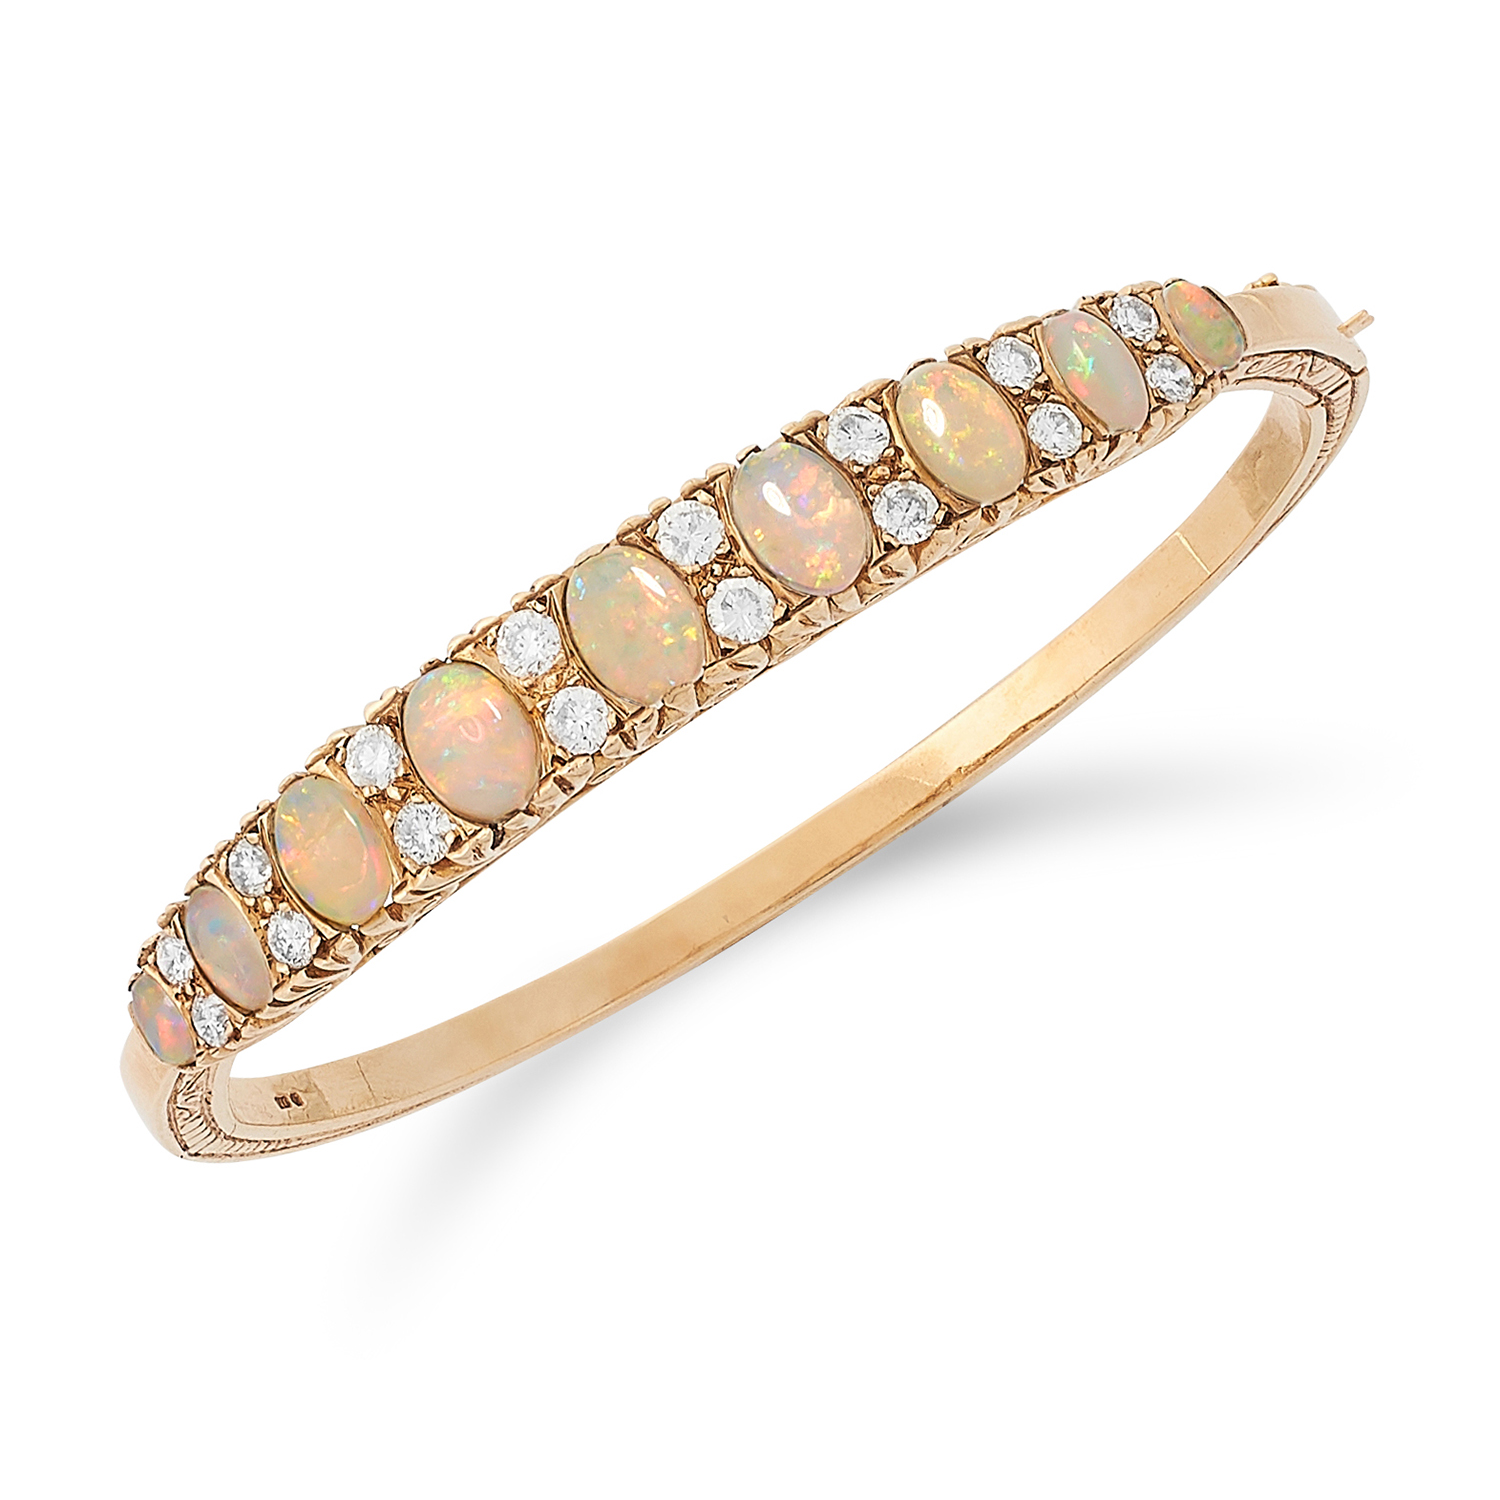 Los 10 - ANTIQUE DIAMOND AND OPAL BANGLE set with alternating cabochon opals and round cut diamonds, 6cm